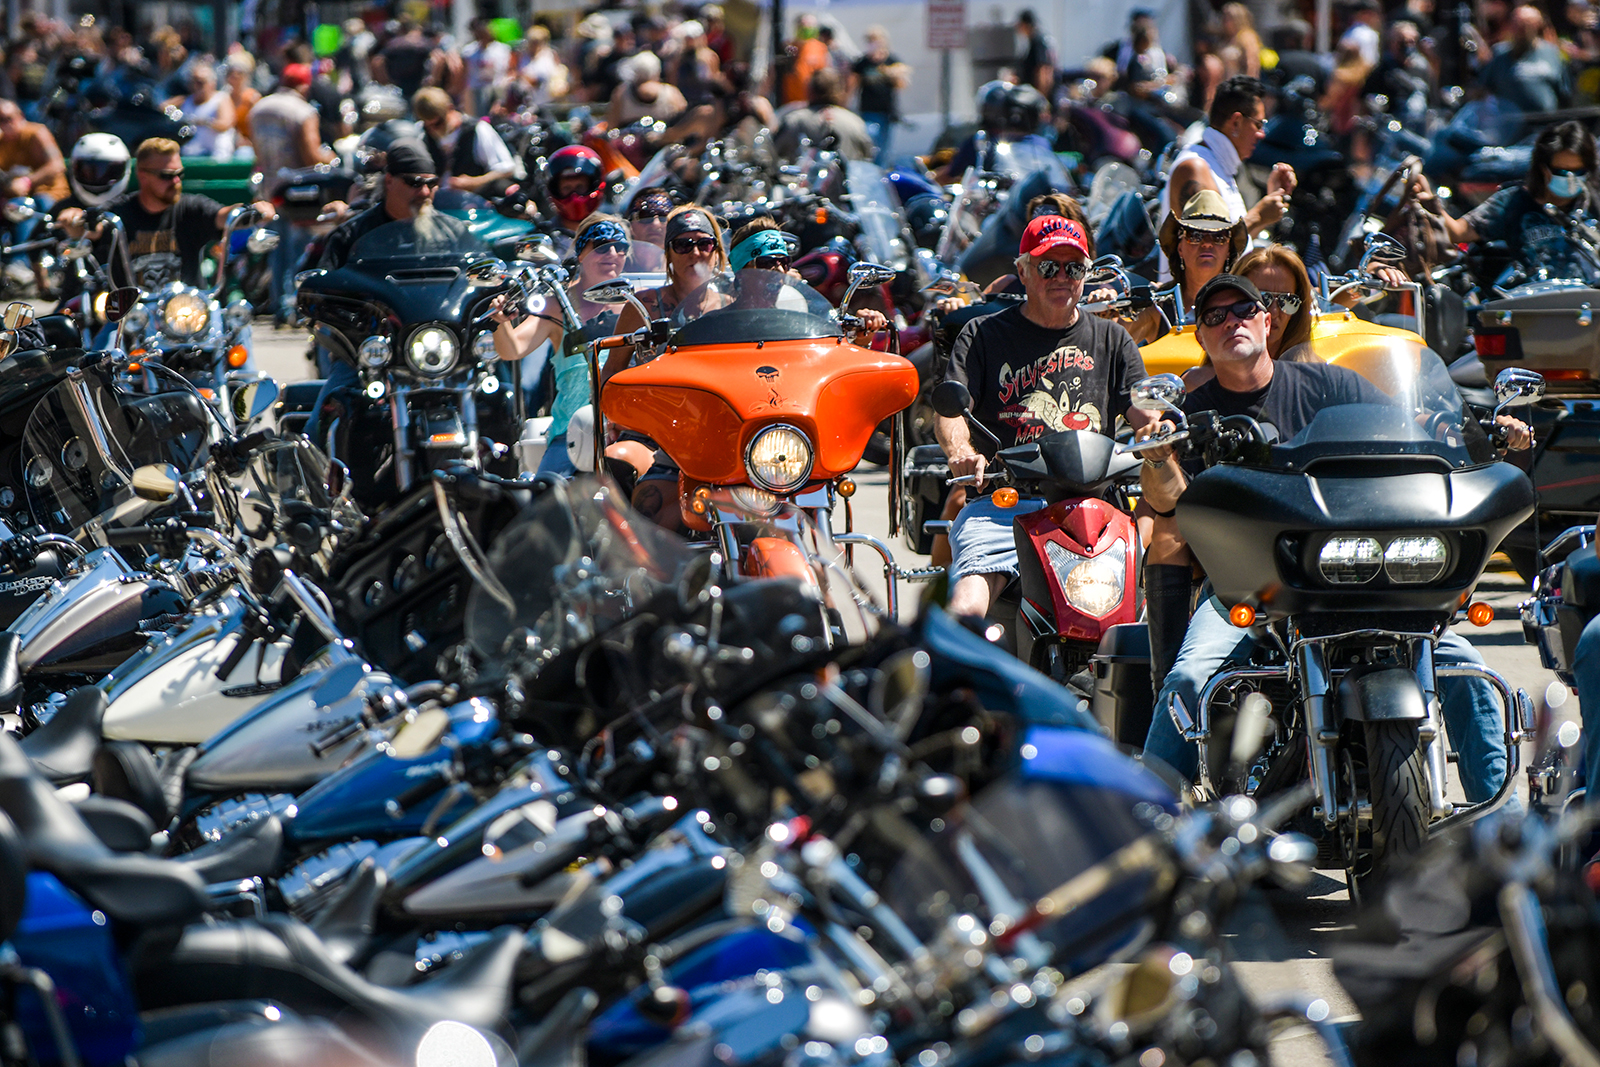 Motorcyclists ride down Main Street during the 80th Annual Sturgis Motorcycle Rally in Sturgis, South Dakota on August 7.